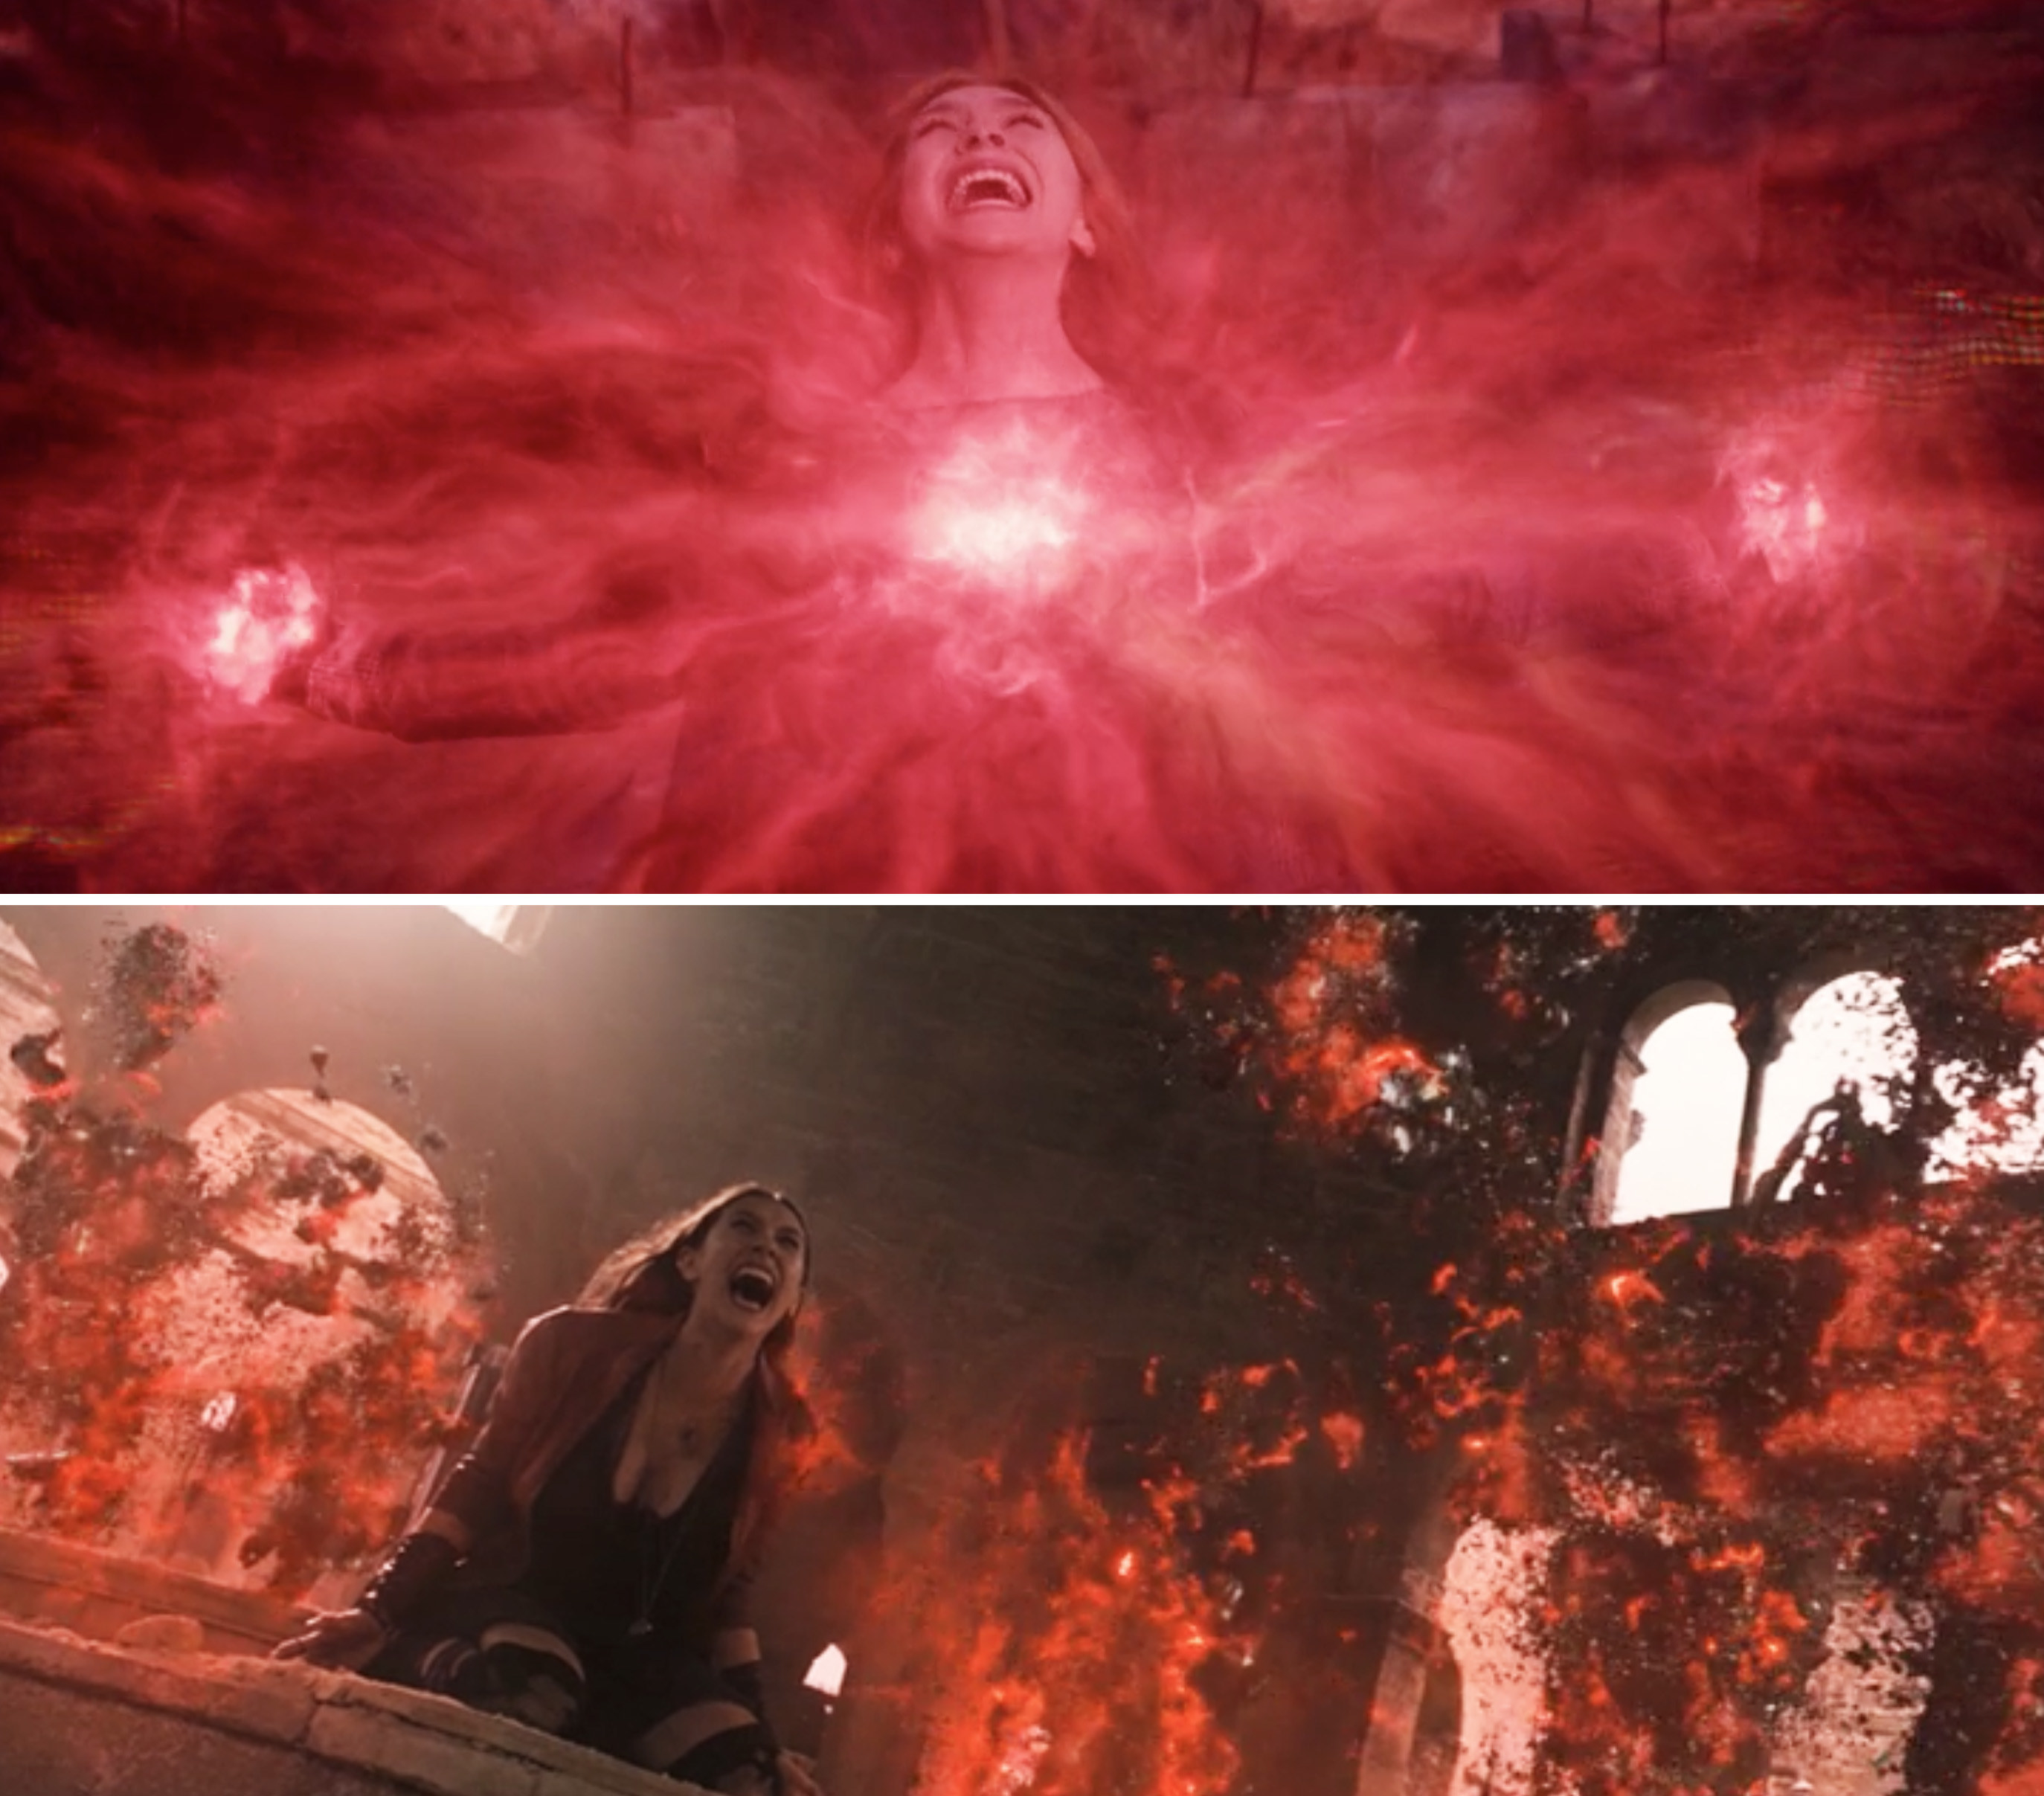 Red magic coming out of Wanda's chest vs. red magic killing Ultron's minions